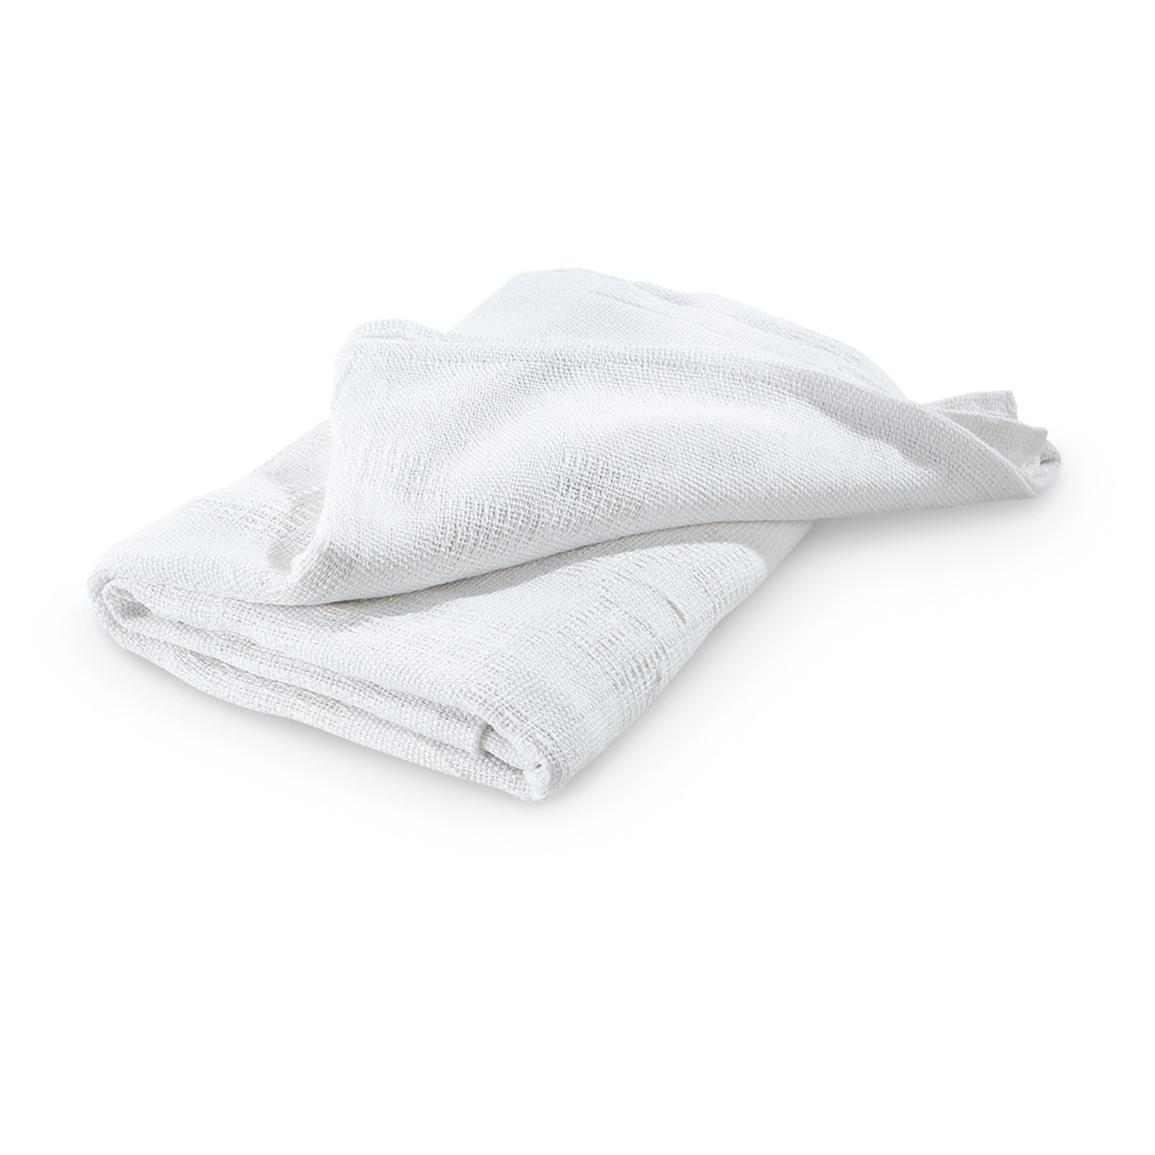 2-Pk. of New Military-style Hospital Blankets, White